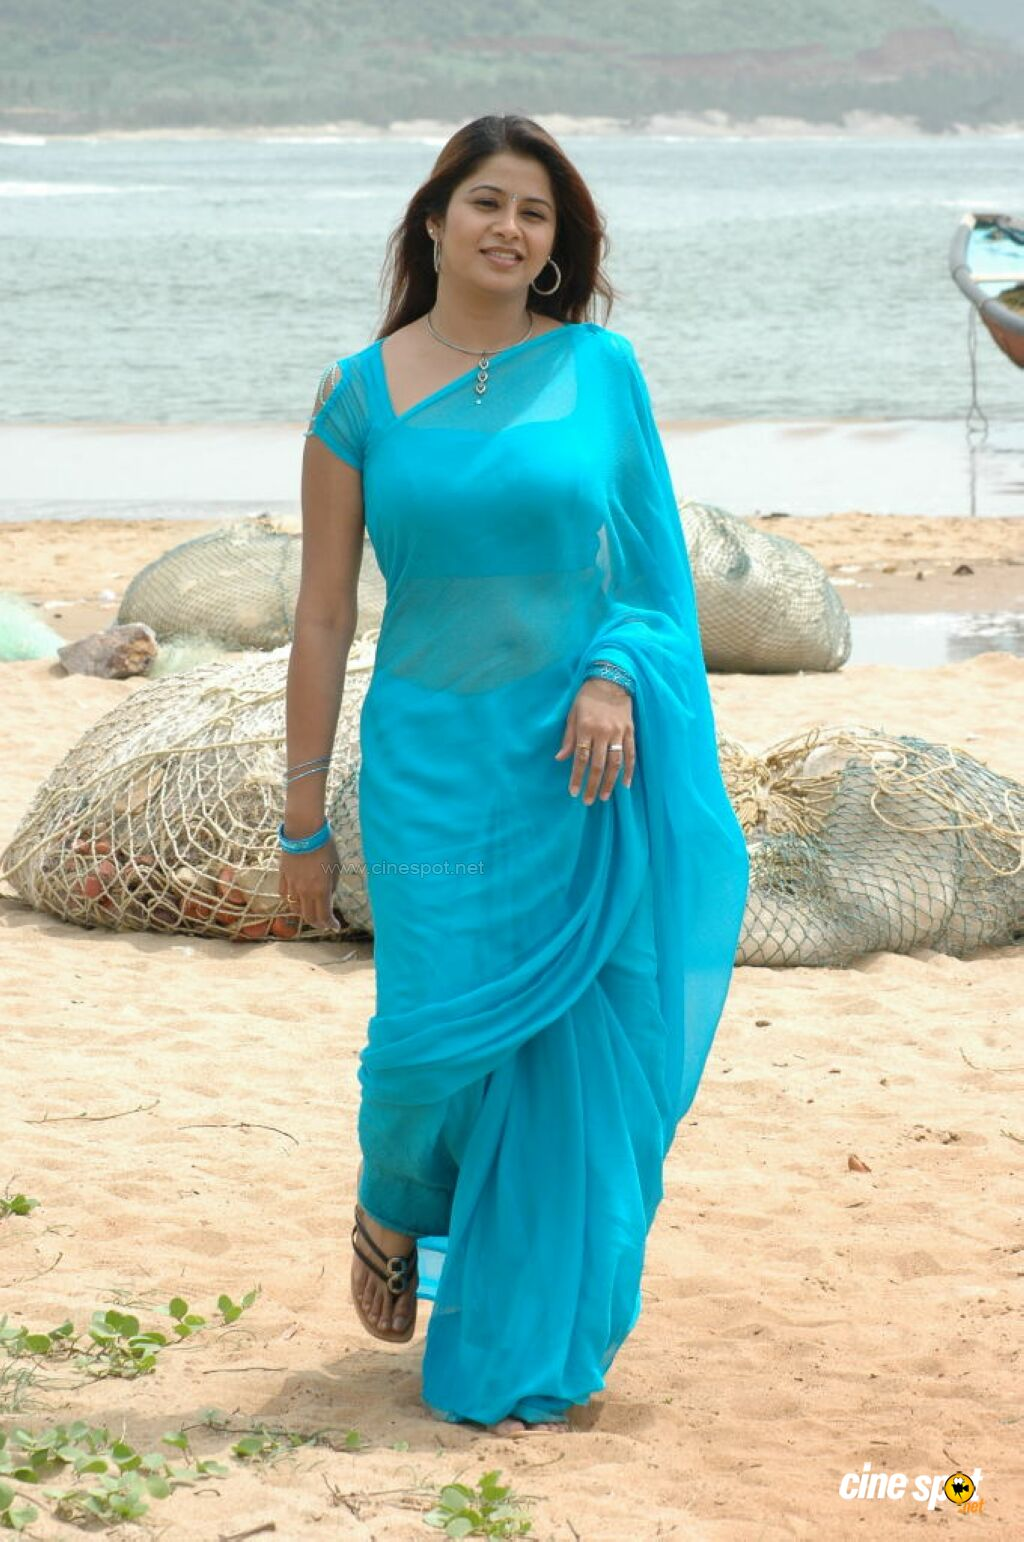 Consider, that actress sangeetha hot in saree happens. You